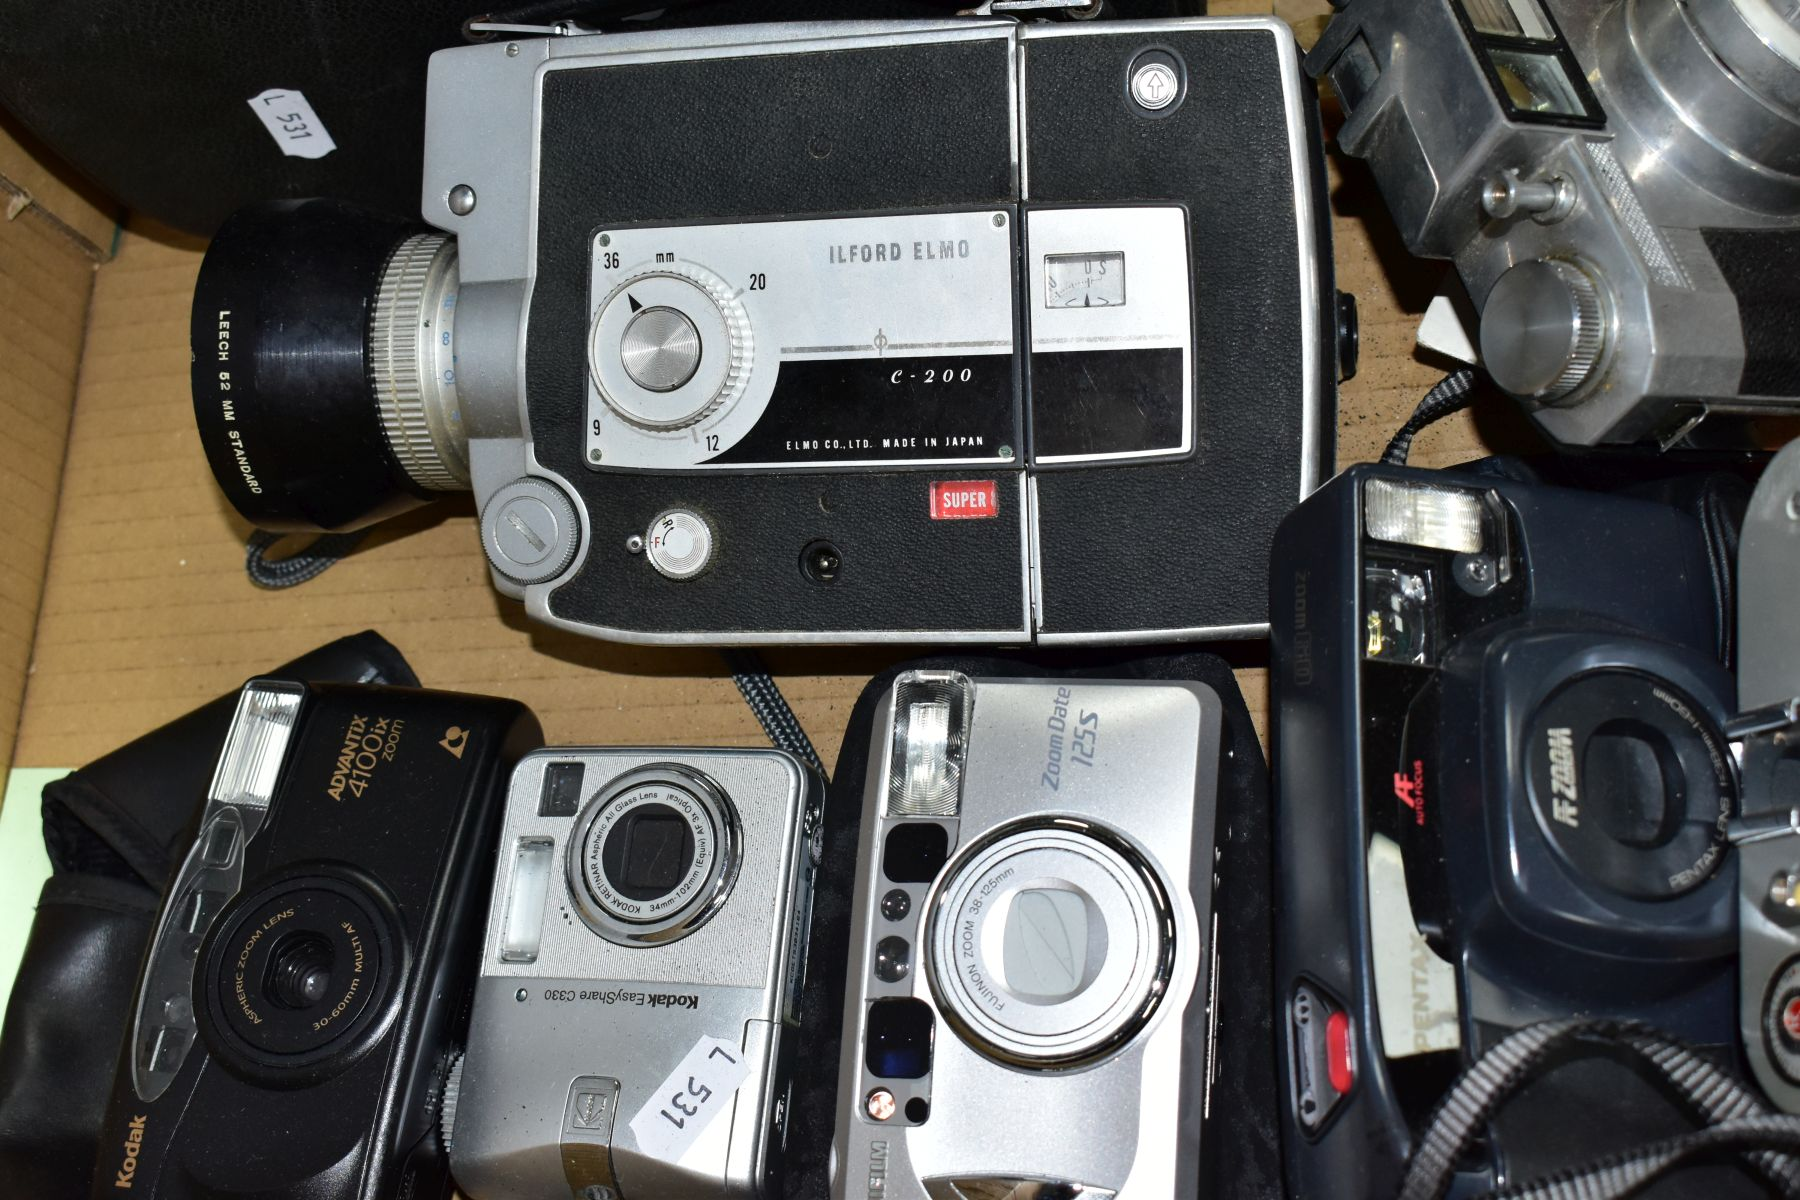 PHOTOGRAPHIC EQUIPMENT, to include Halina Rolls SLR Camera, a Boots Koroll II SLR Camera, - Image 4 of 8